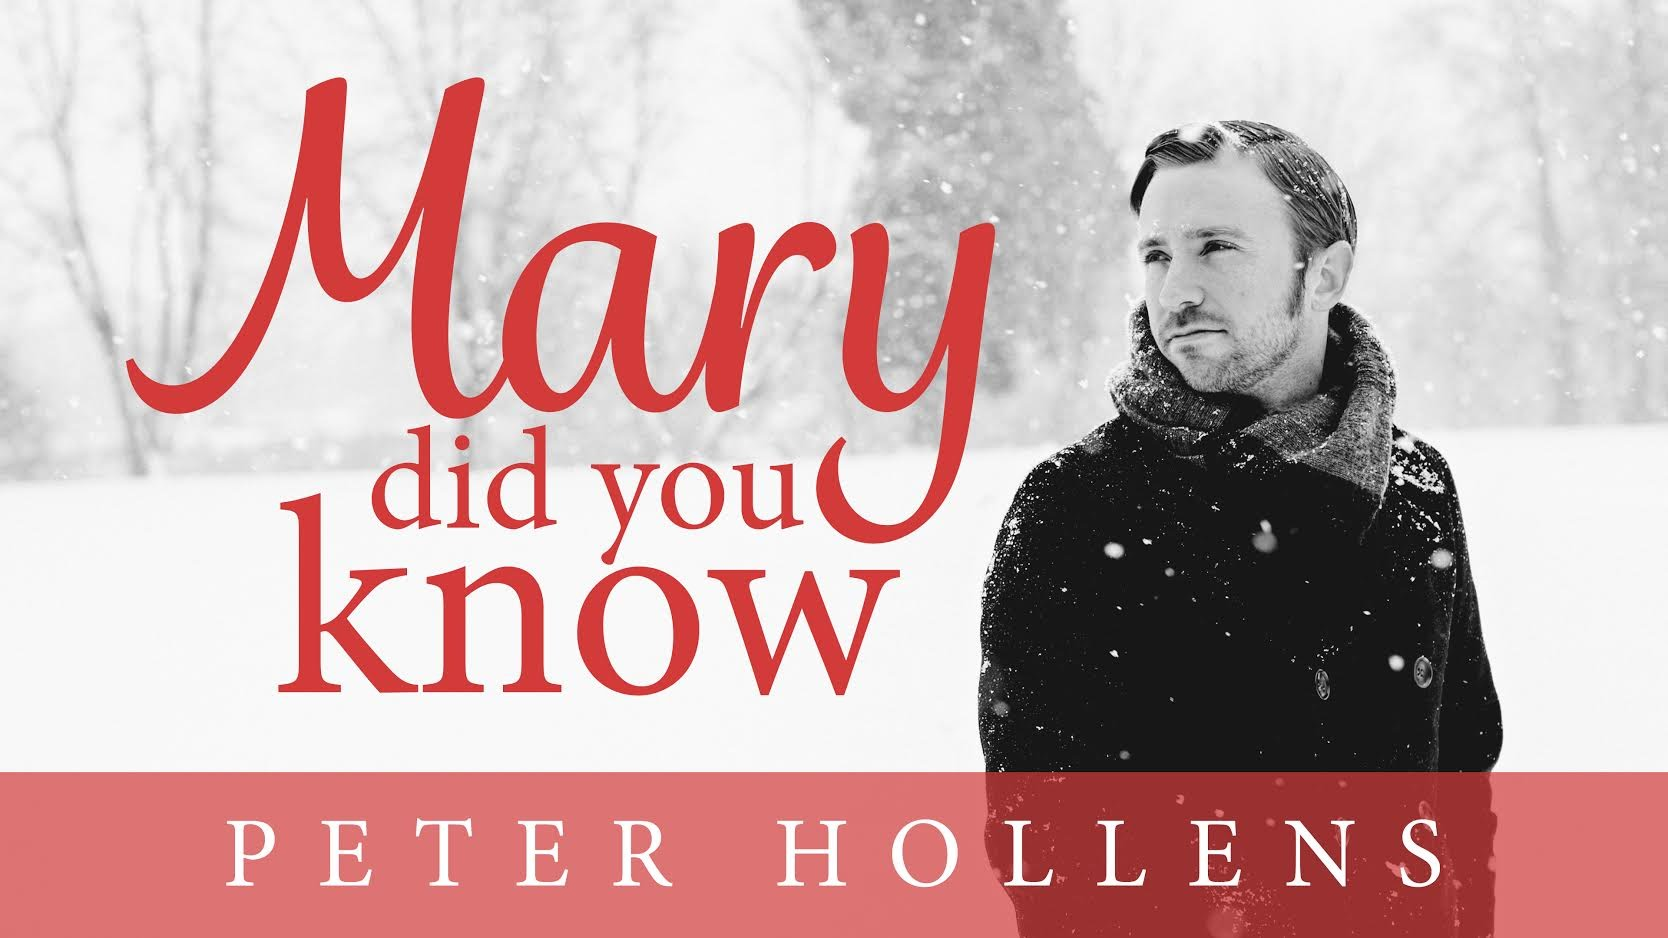 Peter Hollens' Soaring Version of Mary Did You Know